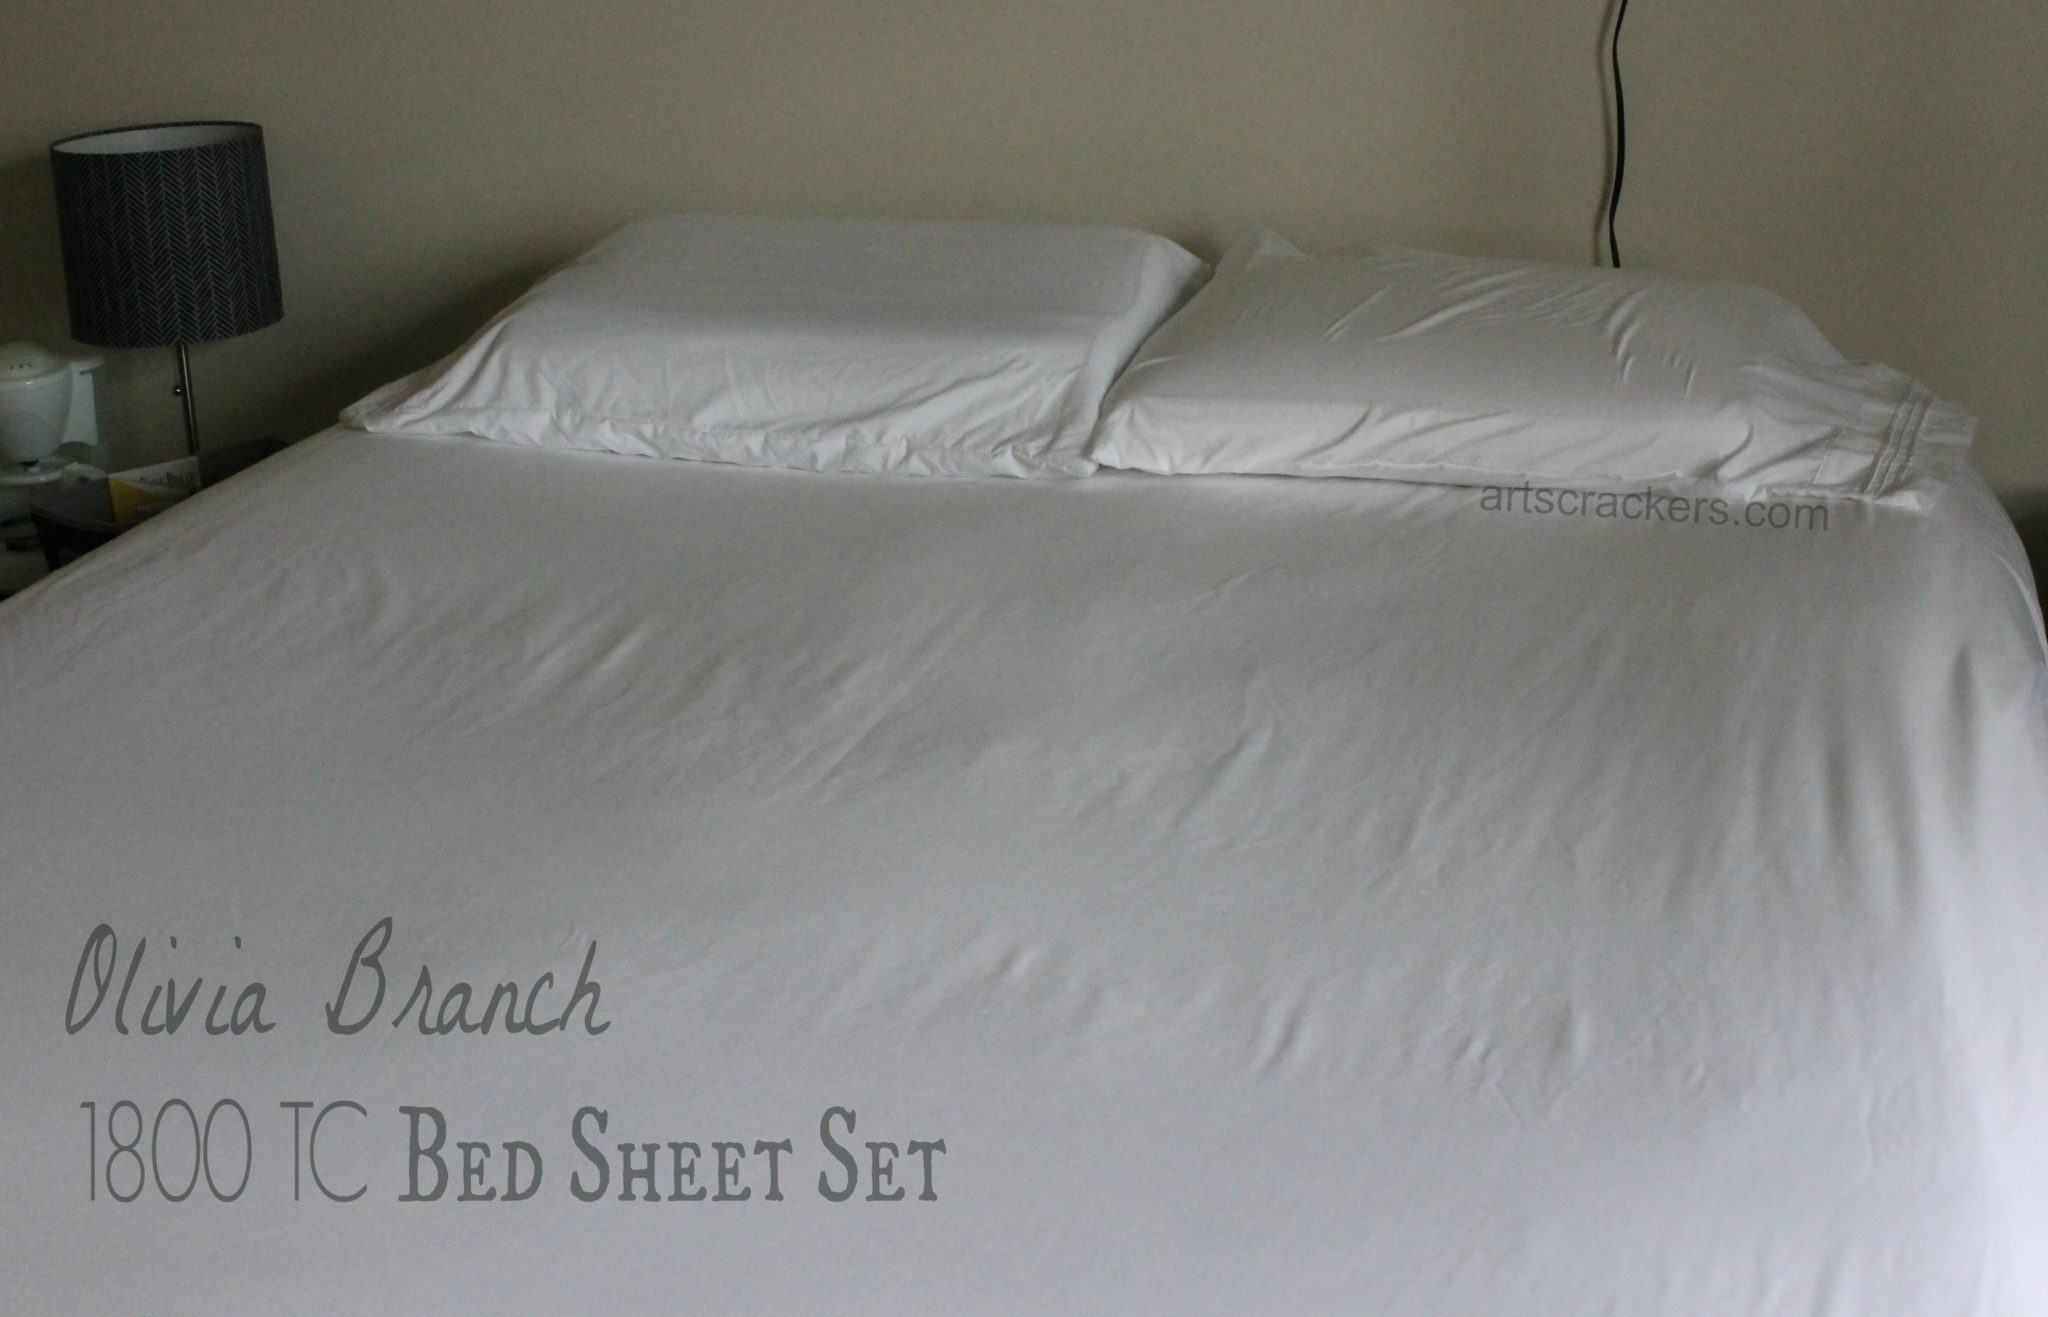 Olivia Branch 1800 Thread Count Bed Sheet Set